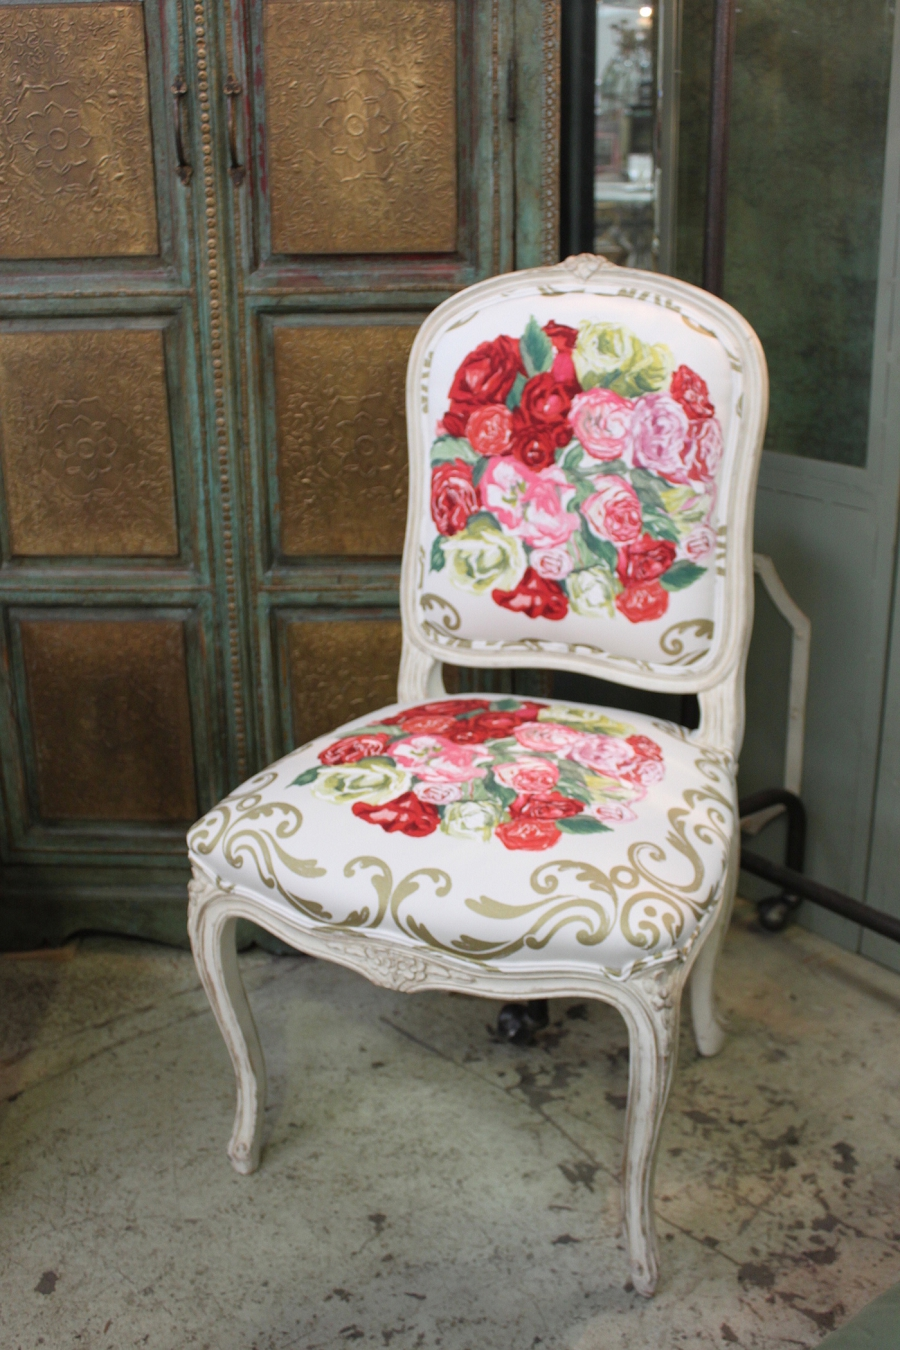 Bedroom French Dining Chair Frame Upholstered In Trisha Guild Fabric